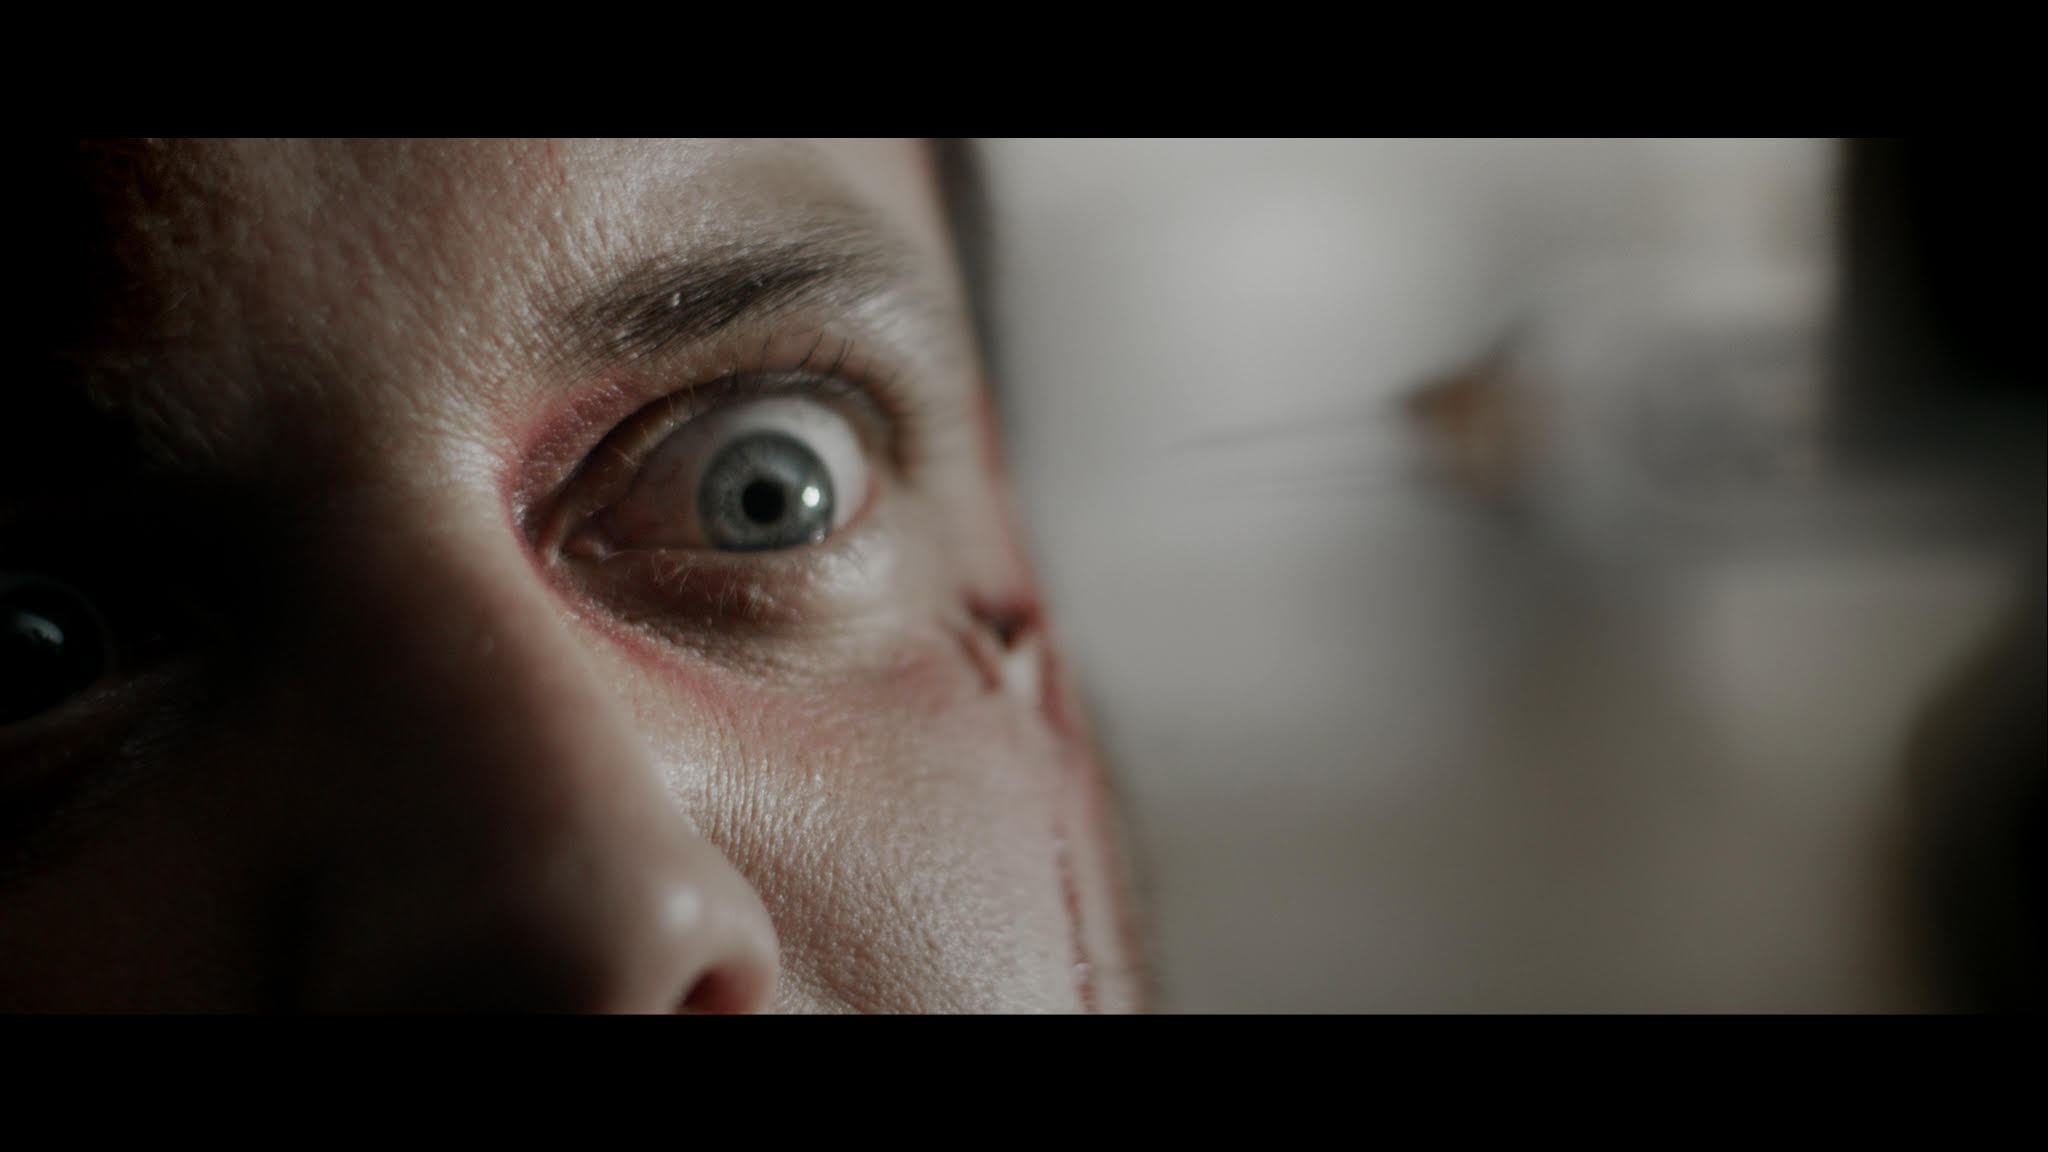 Starring Tom Gordon (The Tour) and Dan Palmer (Stalled, Evil Aliens) the film premiered at London's FrightFest Halloween Event 2015, and later went on to pick up the Best Short Film Award at Germany's Weekend of Horrors as part of its worldwide festival run.   Synopsis: A missing package becomes the subject of increasingly violent tensions between two mysterious colleagues. With their lives on the line, how far are they prepares to go to find it… or keep it hidden?